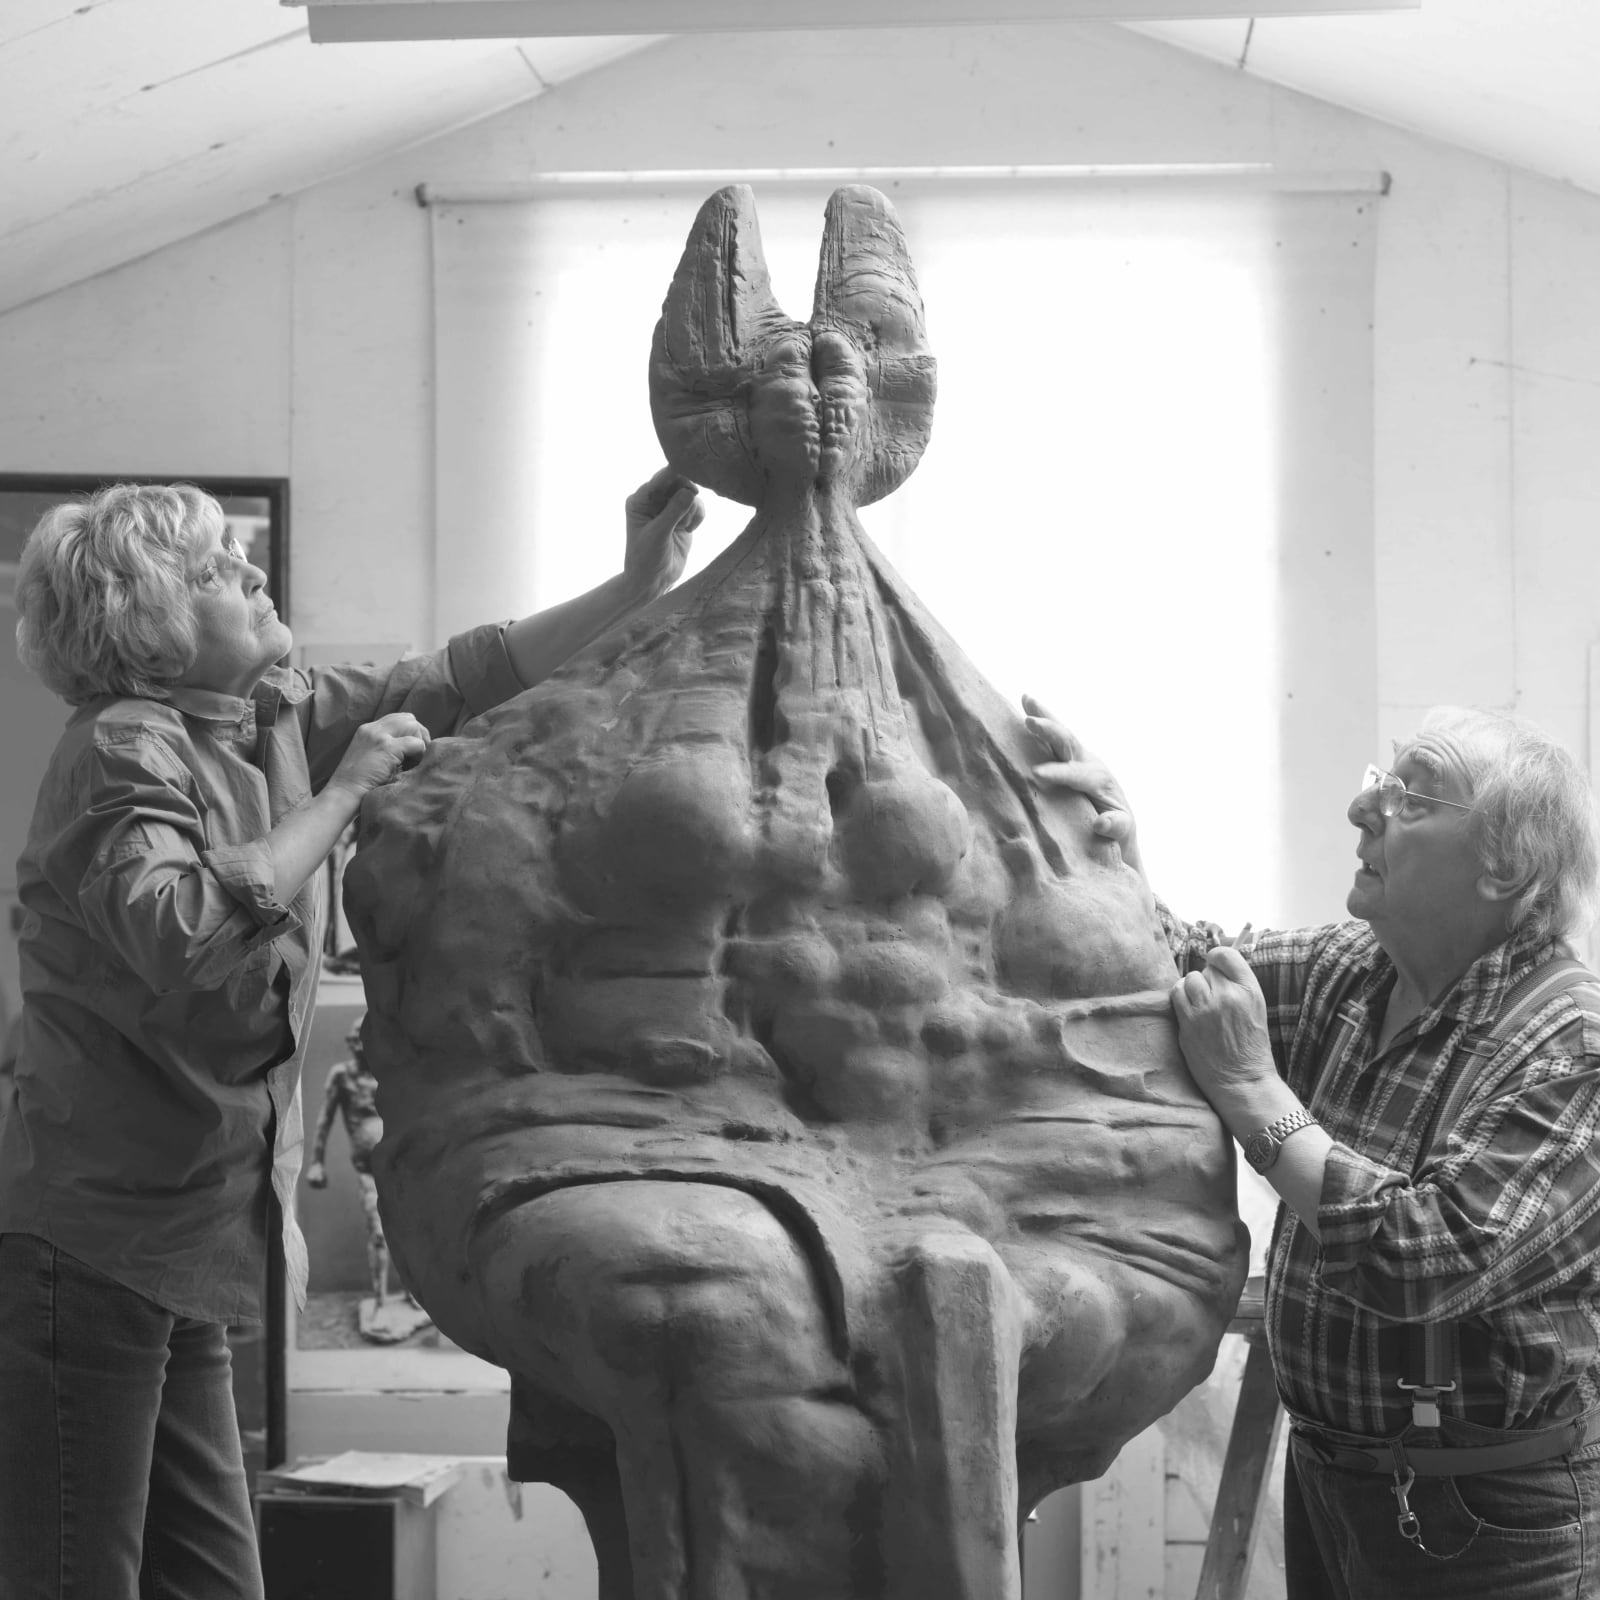 Ralph Brown & Carrie Brown with Seated Queen Monumental, 2008